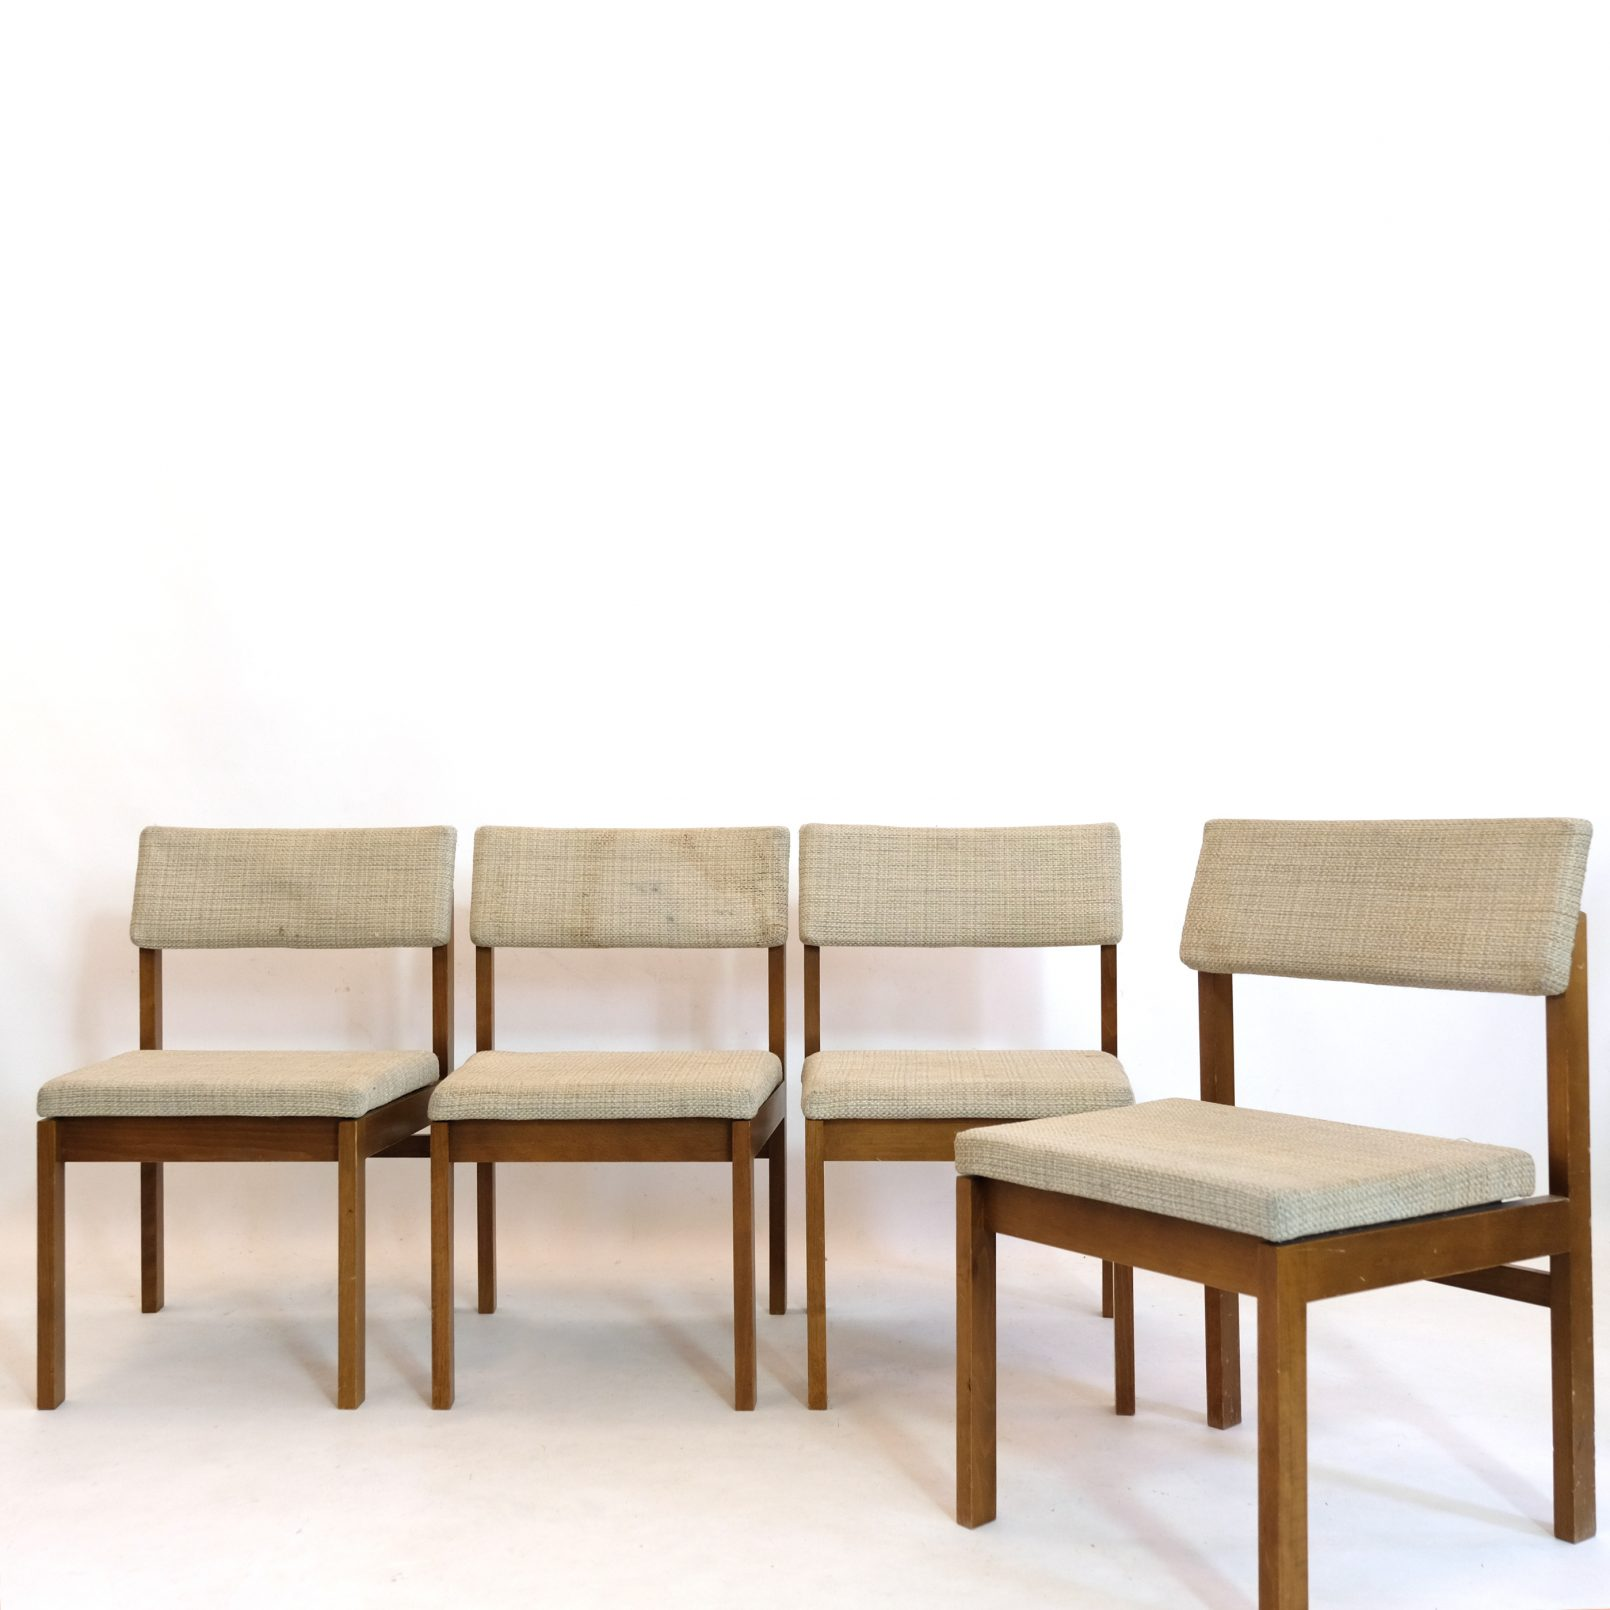 Set of four dining chairs by Willy Guhl, 1959.